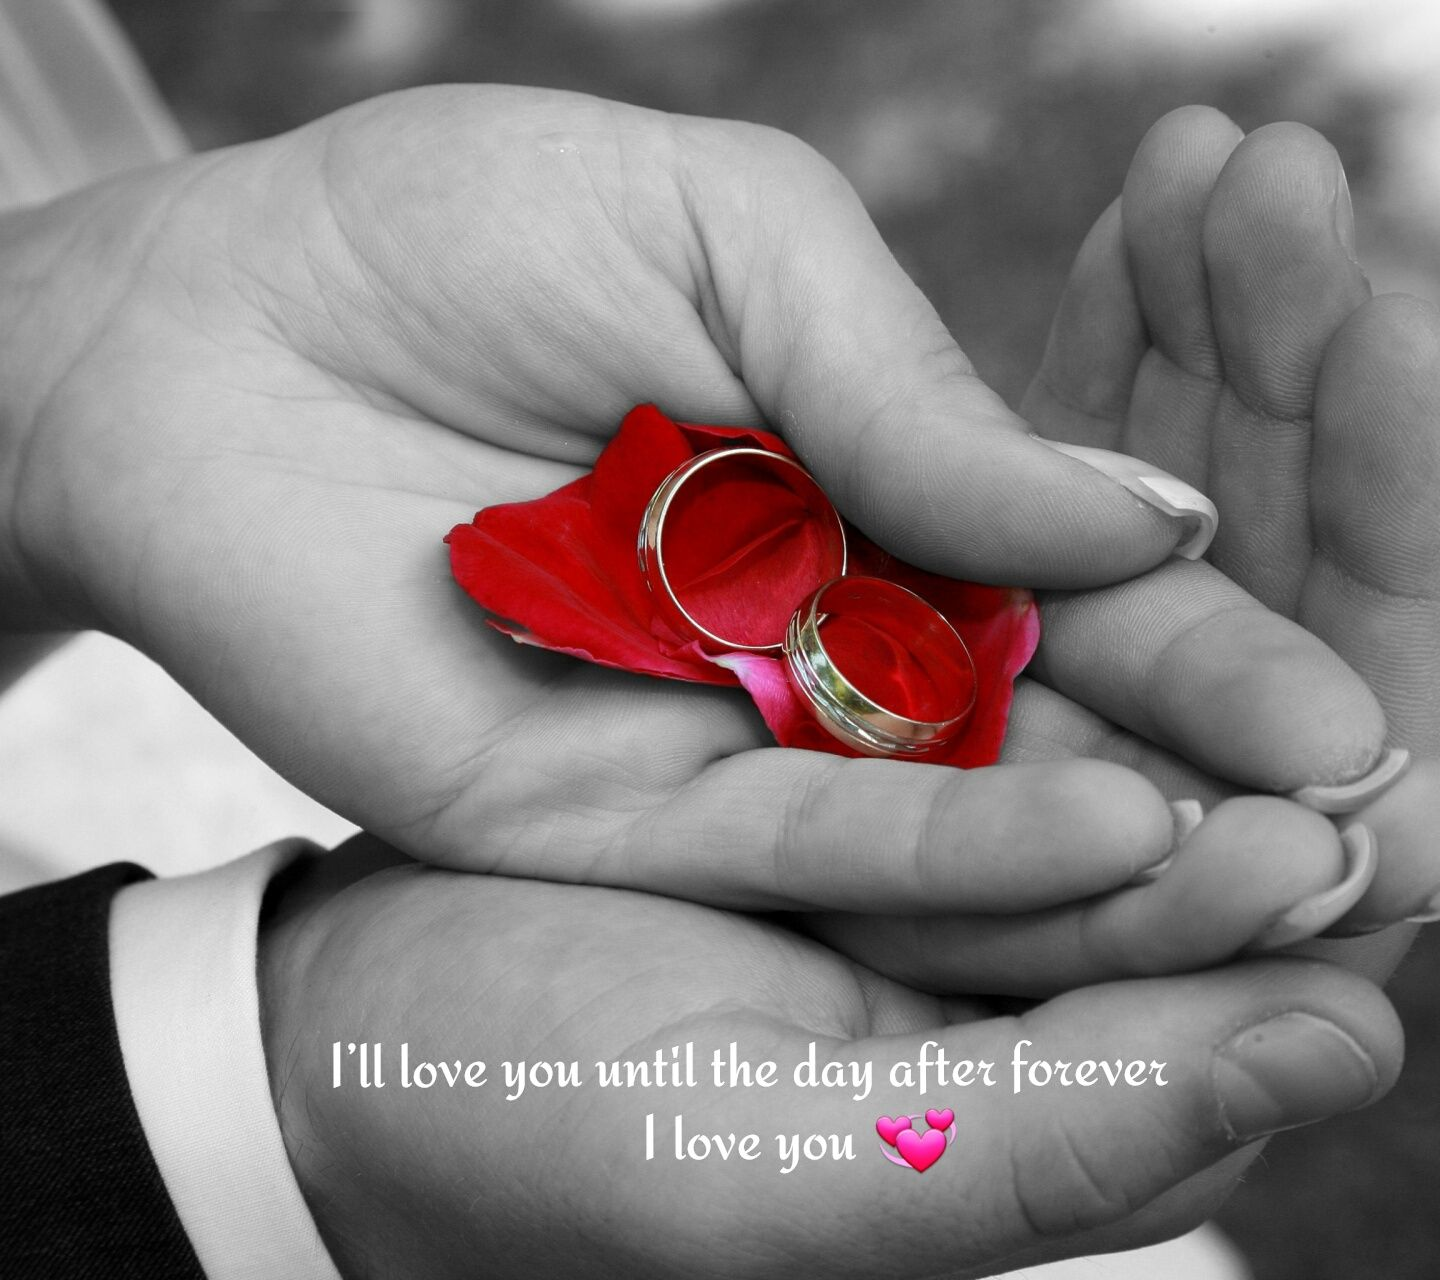 1440x1280 Download Untill the day love forever image - Desktop laptop ...